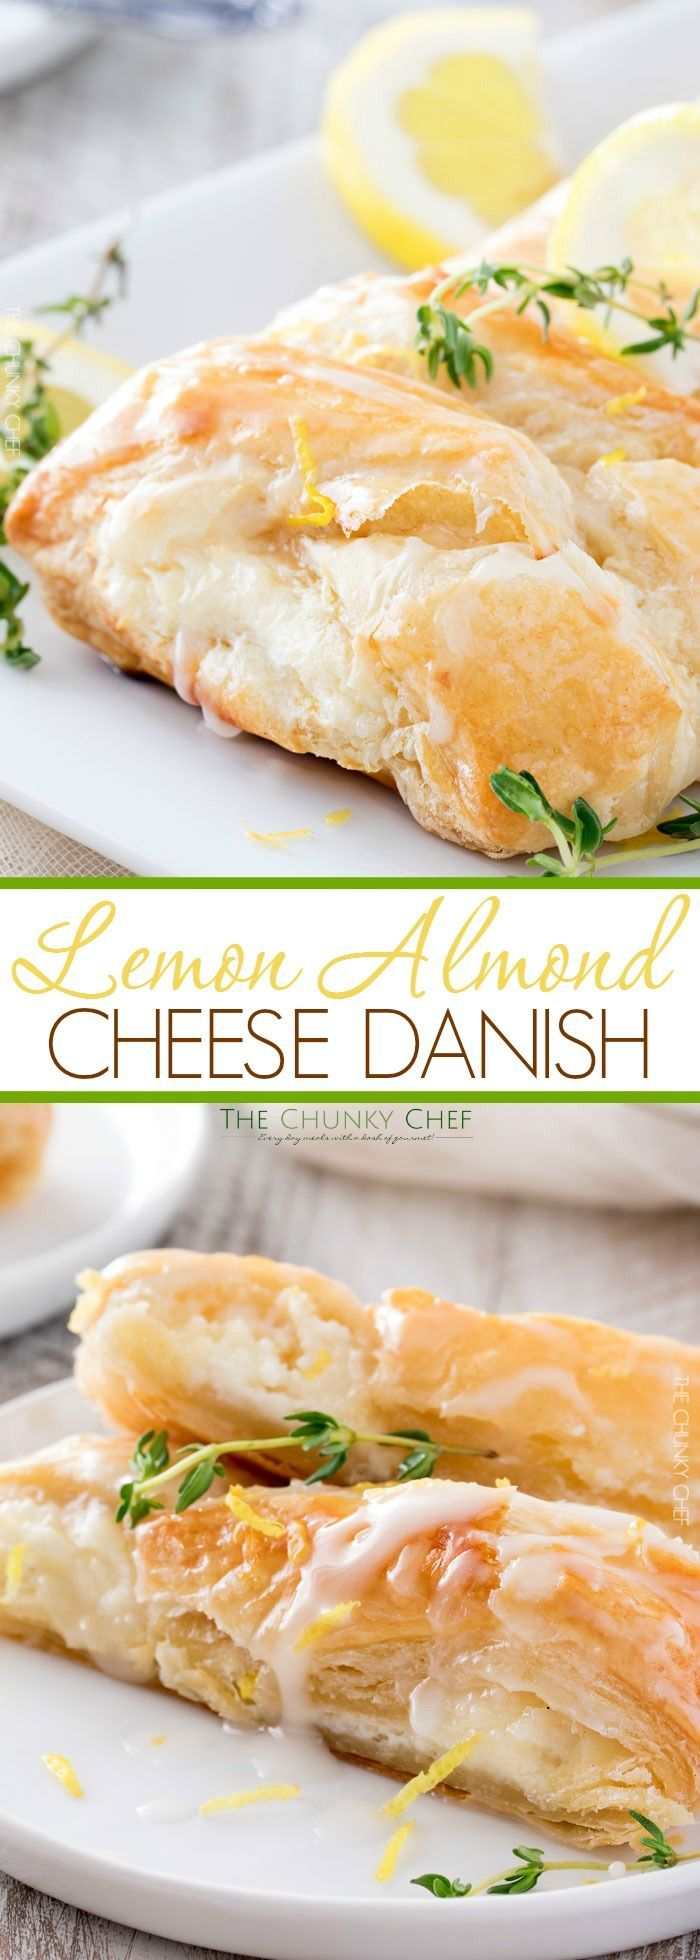 Lemon Almond Cheese Danish | Breakfast pastries don't have to be complicated... this delicate and delicious lemon almond cheese danish is made easy in 30 minutes with puff pastry! | http://thechunkychef.com